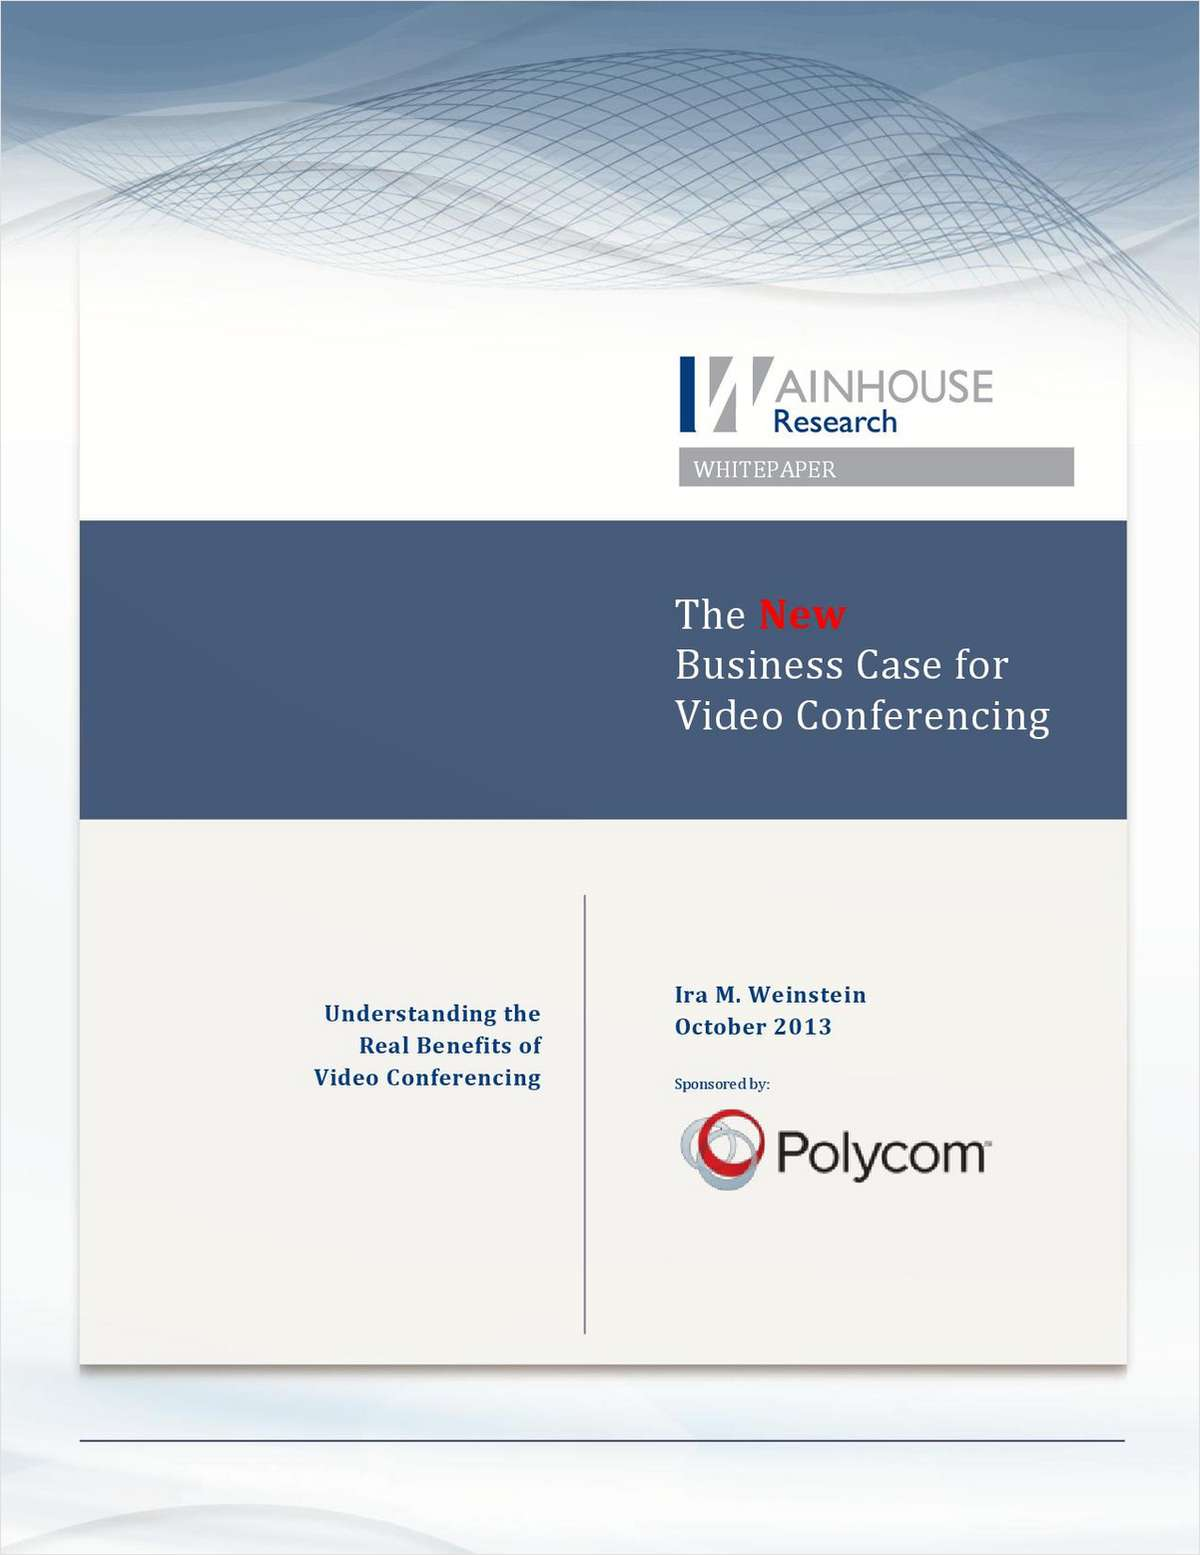 The New Business Case for Video Conferencing: 7 Real-World Benefits Beyond Cost-Savings